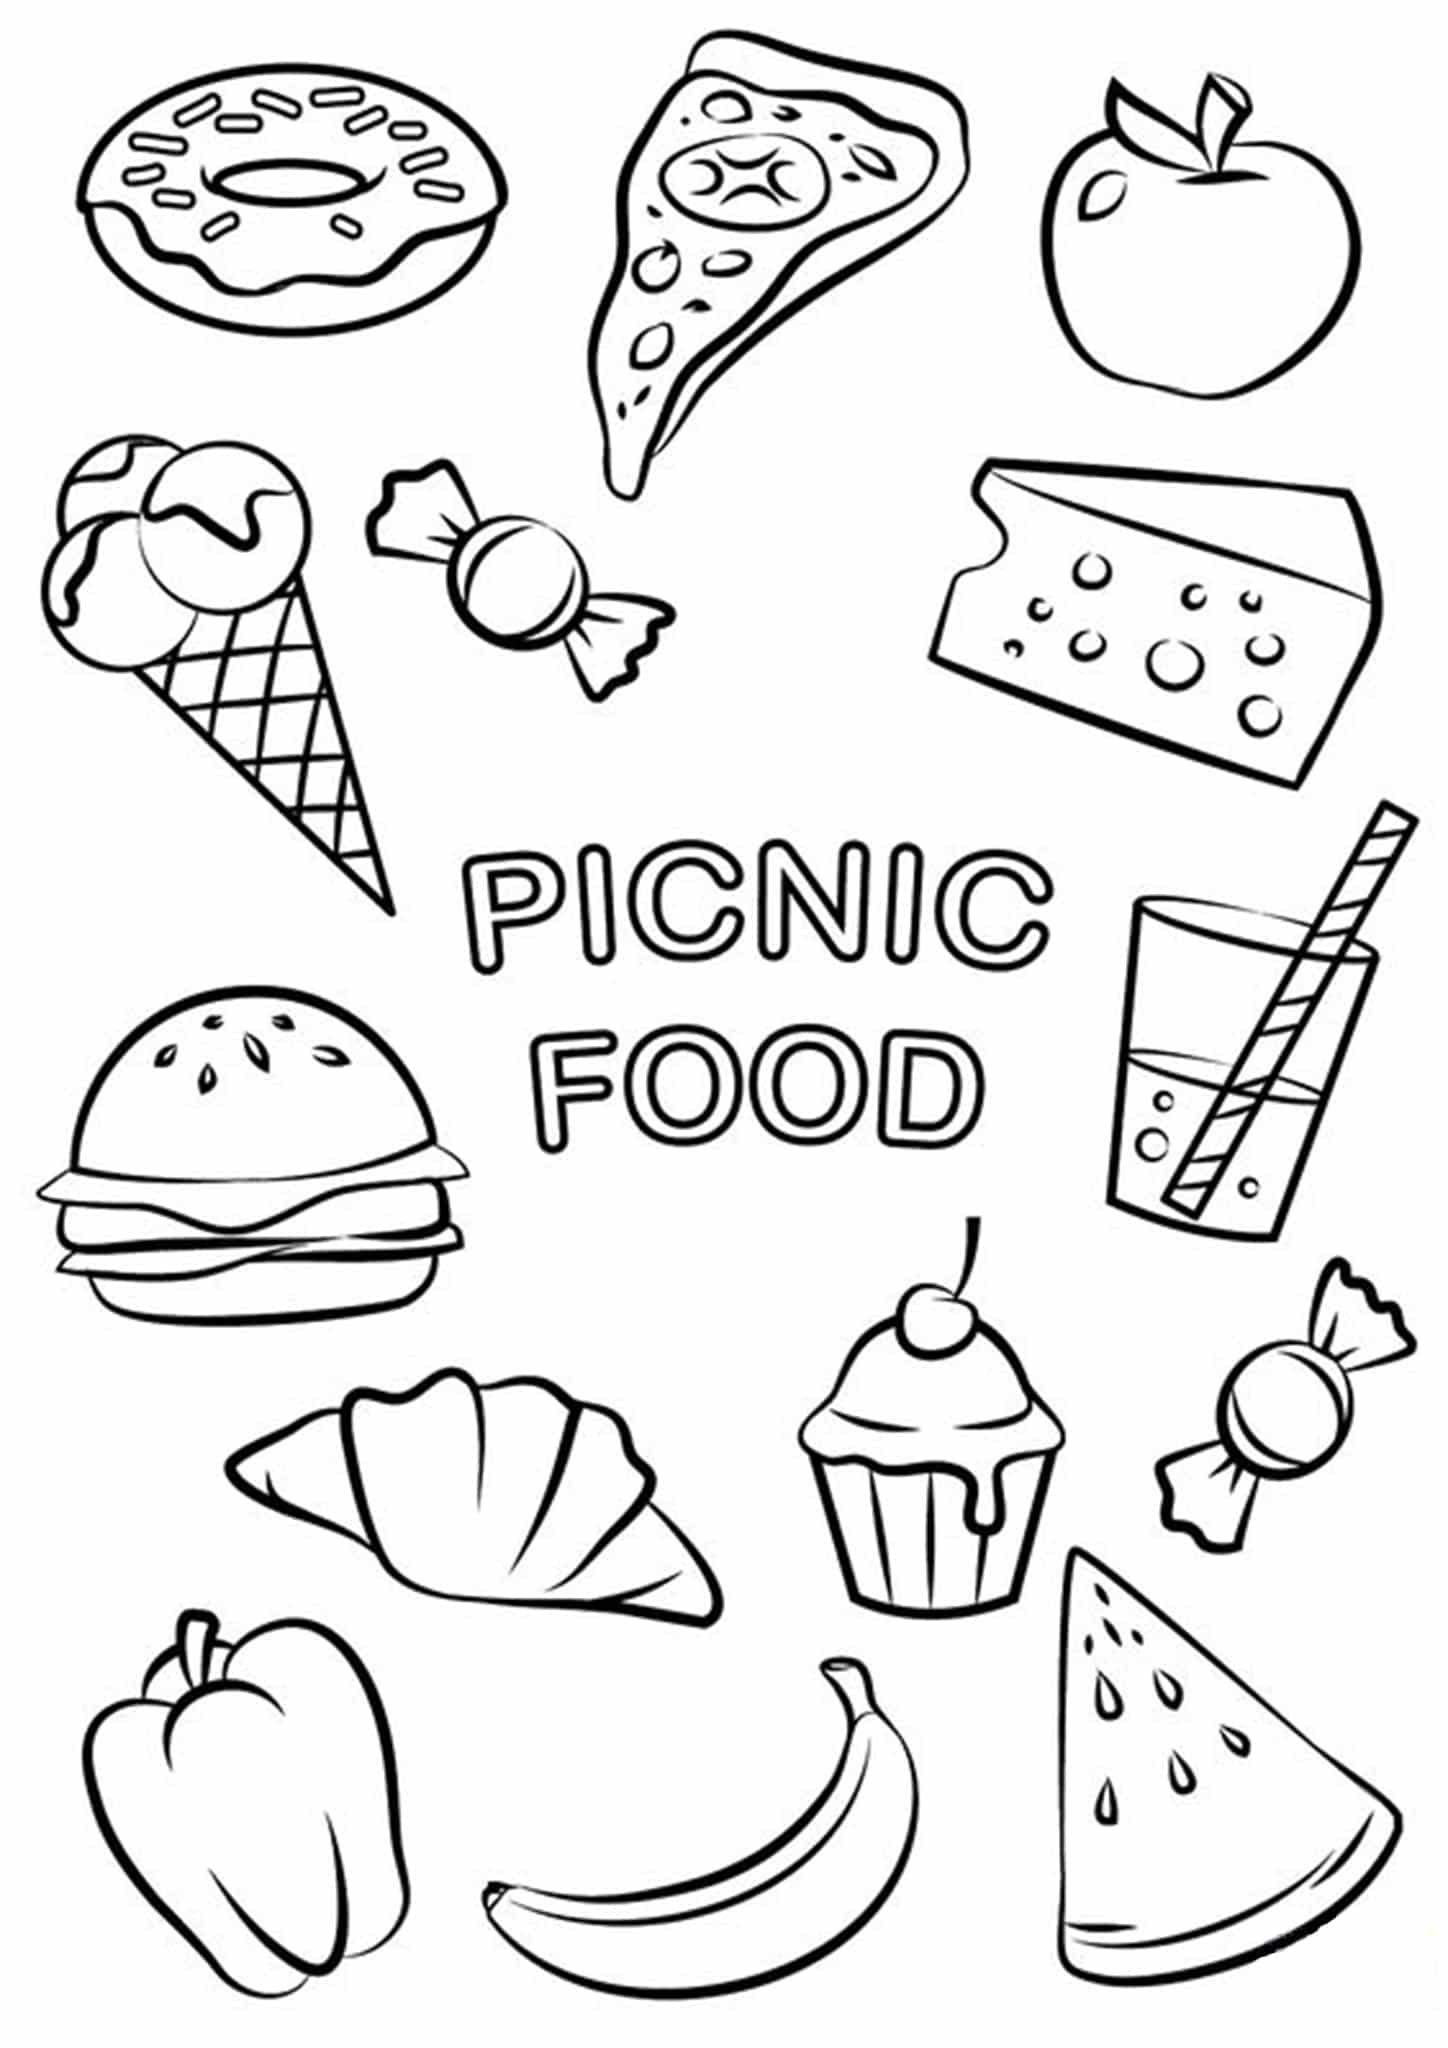 coloring picture food food coloring pages getcoloringpagescom picture coloring food